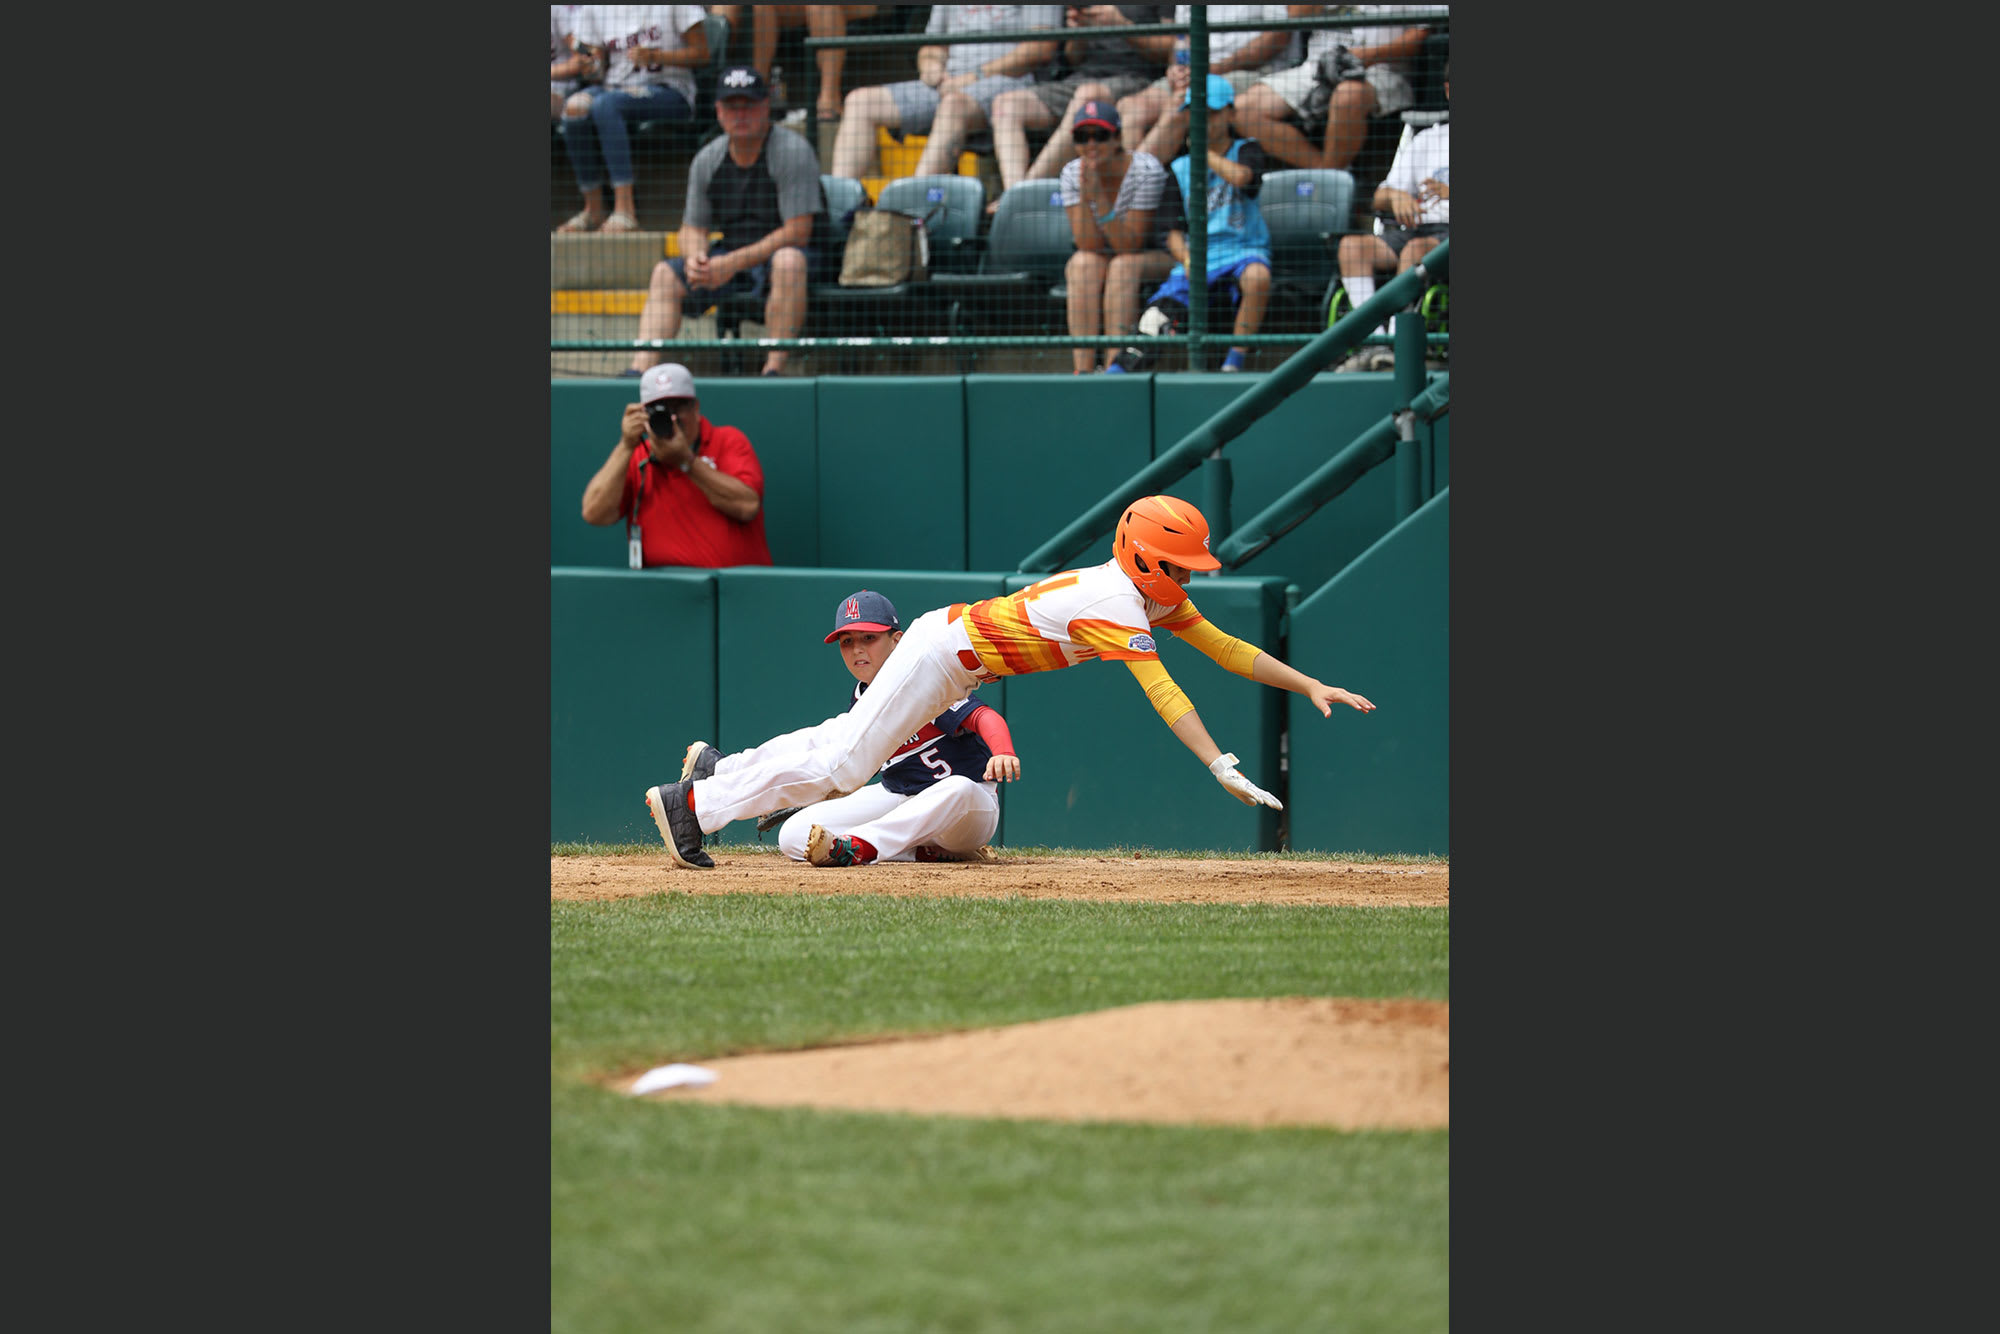 southwest player sliding into base